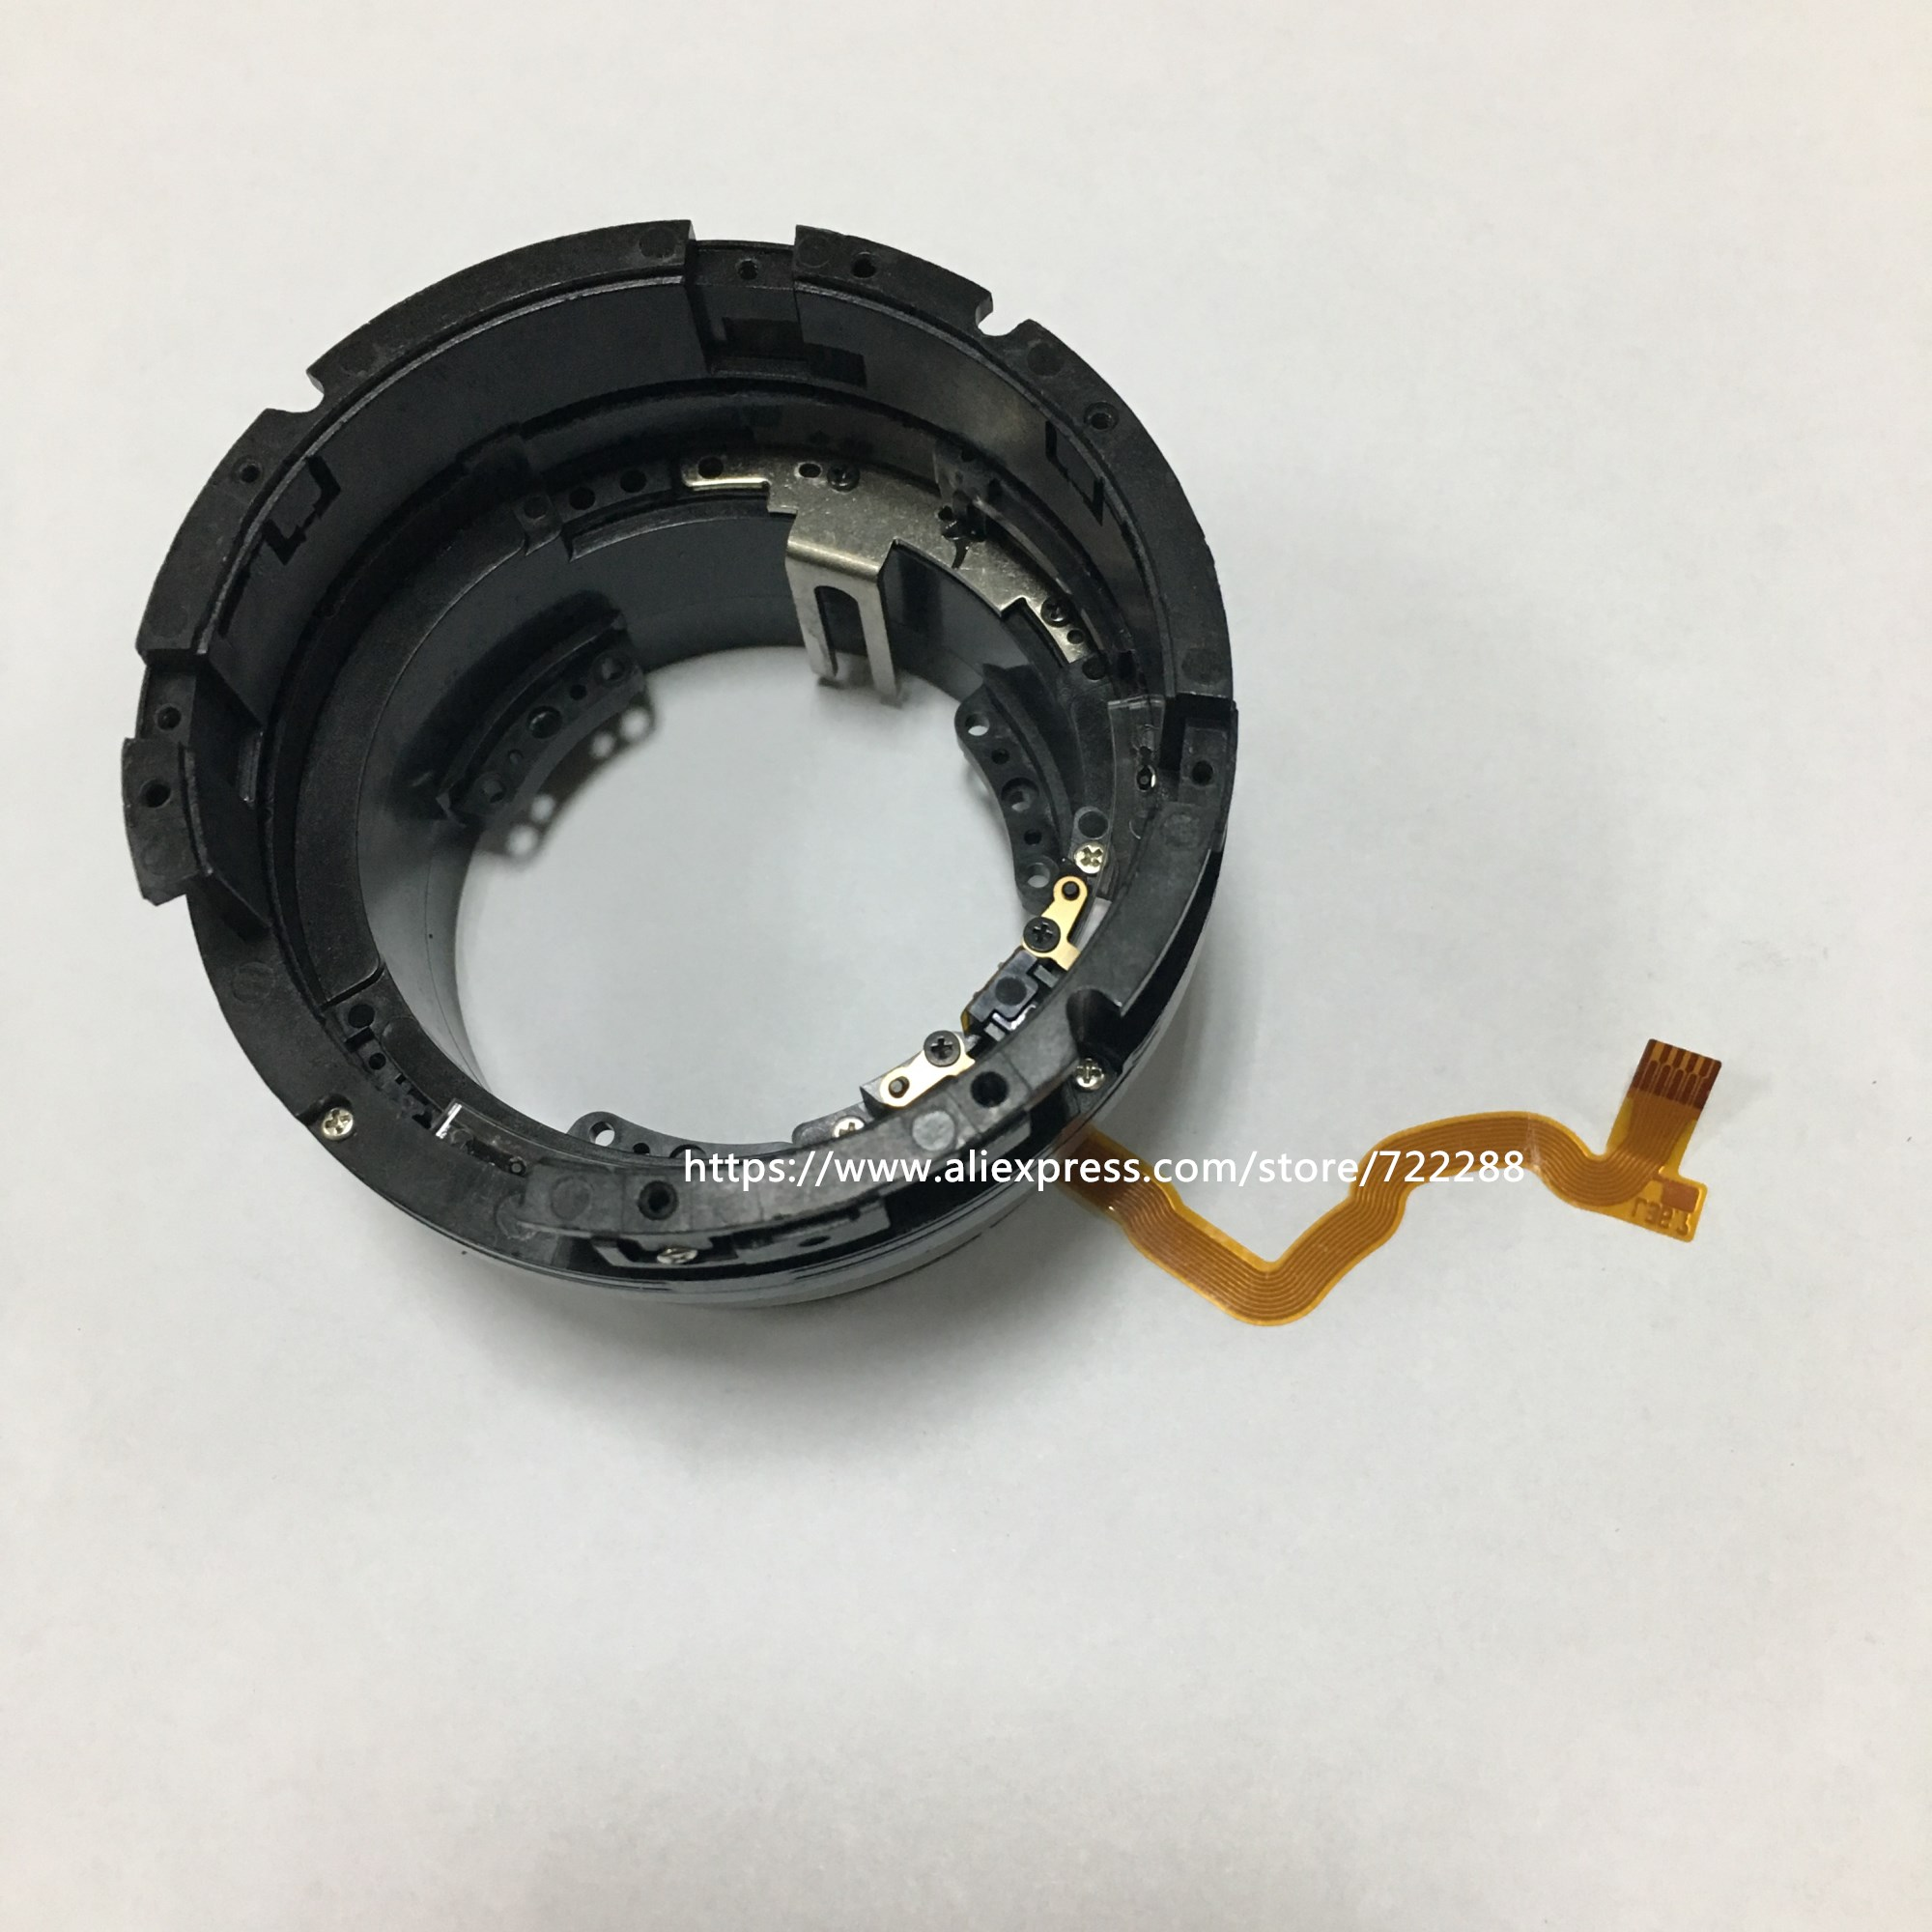 Image 3 - Repair Part For Canon EF 85mm F/1.8 USM Lens Focusing Assy AF Focus Motor Unit YG2 0057 009-in Electronics Stocks from Electronic Components & Supplies